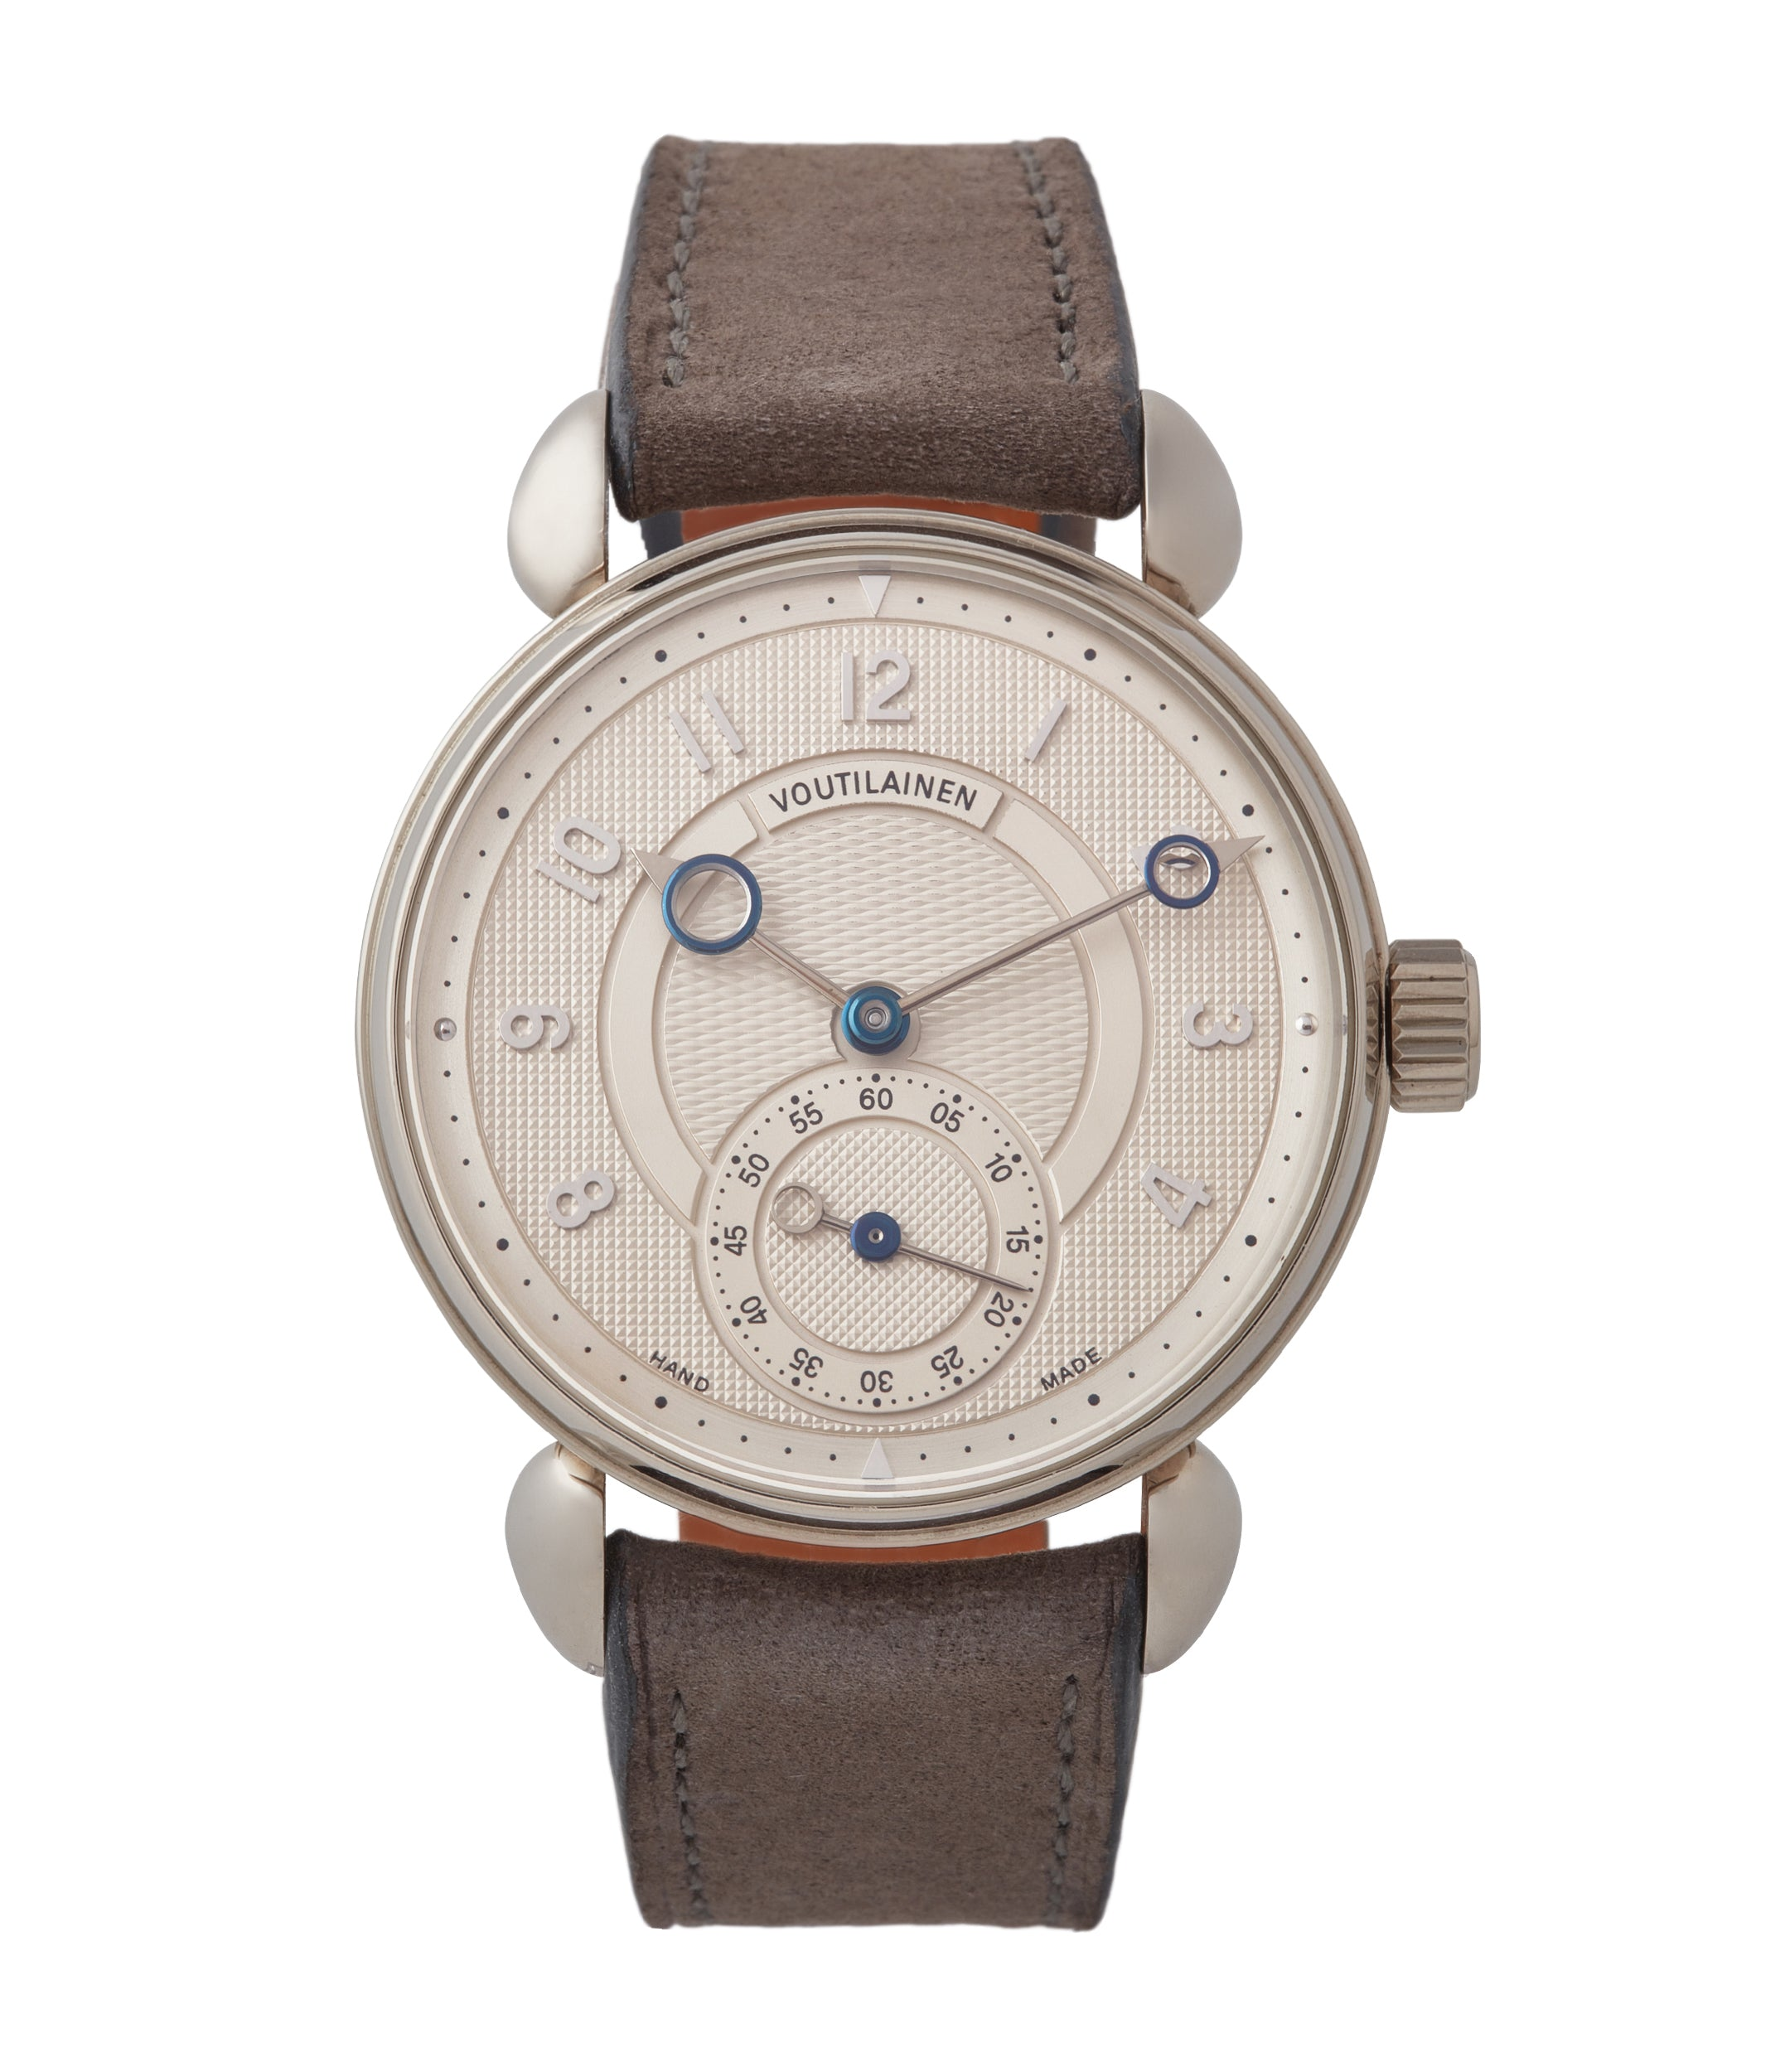 Buy Voutilainen Observatoire Limited Edition white gold dress watch independent watchmaker for sale online at A Collected Man London